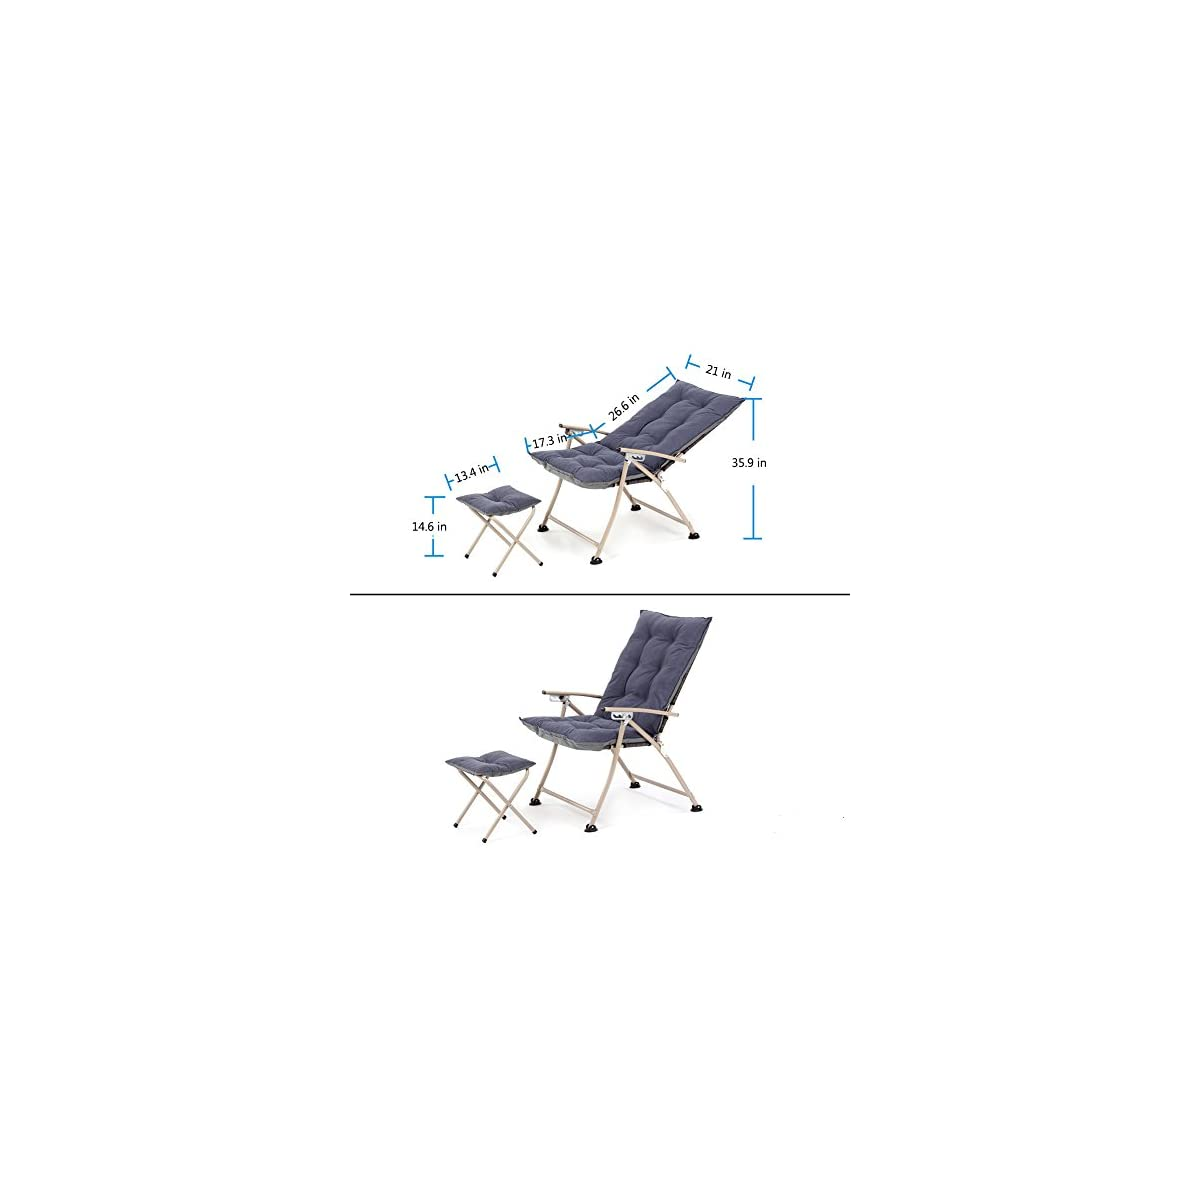 Pleasing Campland Deluxe Padded Reclining Chair With Footrest Adjustable Camping Fishing Folding Cushion Relax Lazy Chair Creativecarmelina Interior Chair Design Creativecarmelinacom